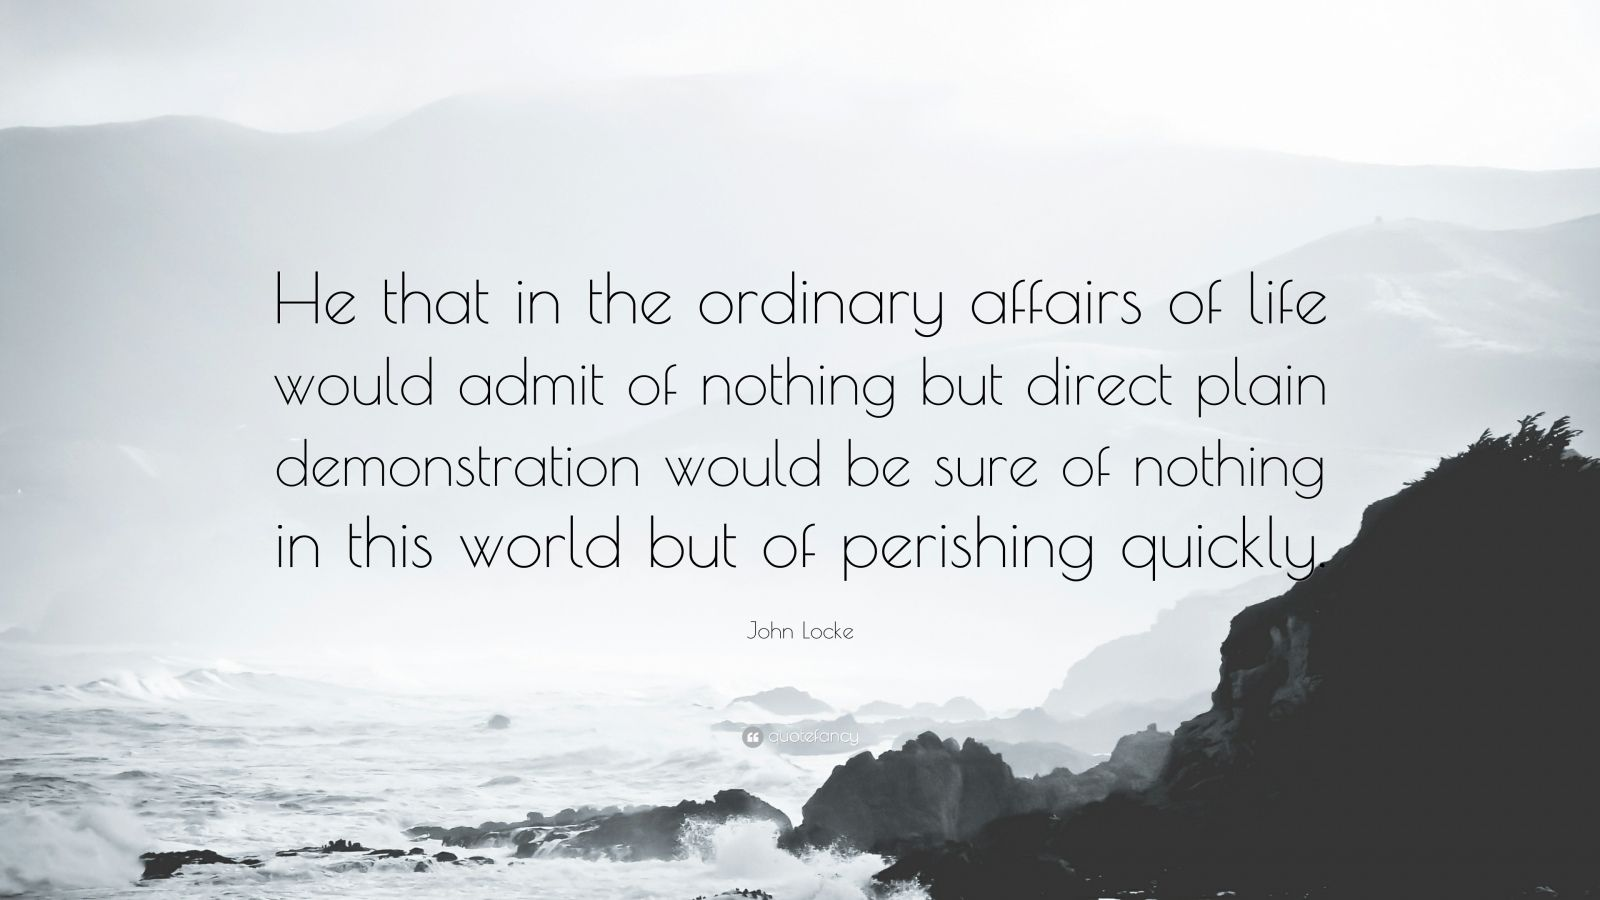 """John Locke Quote: """"He that in the ordinary affairs of life would admit of nothing but direct plain demonstration would be sure of nothing in this world but of perishing quickly."""""""